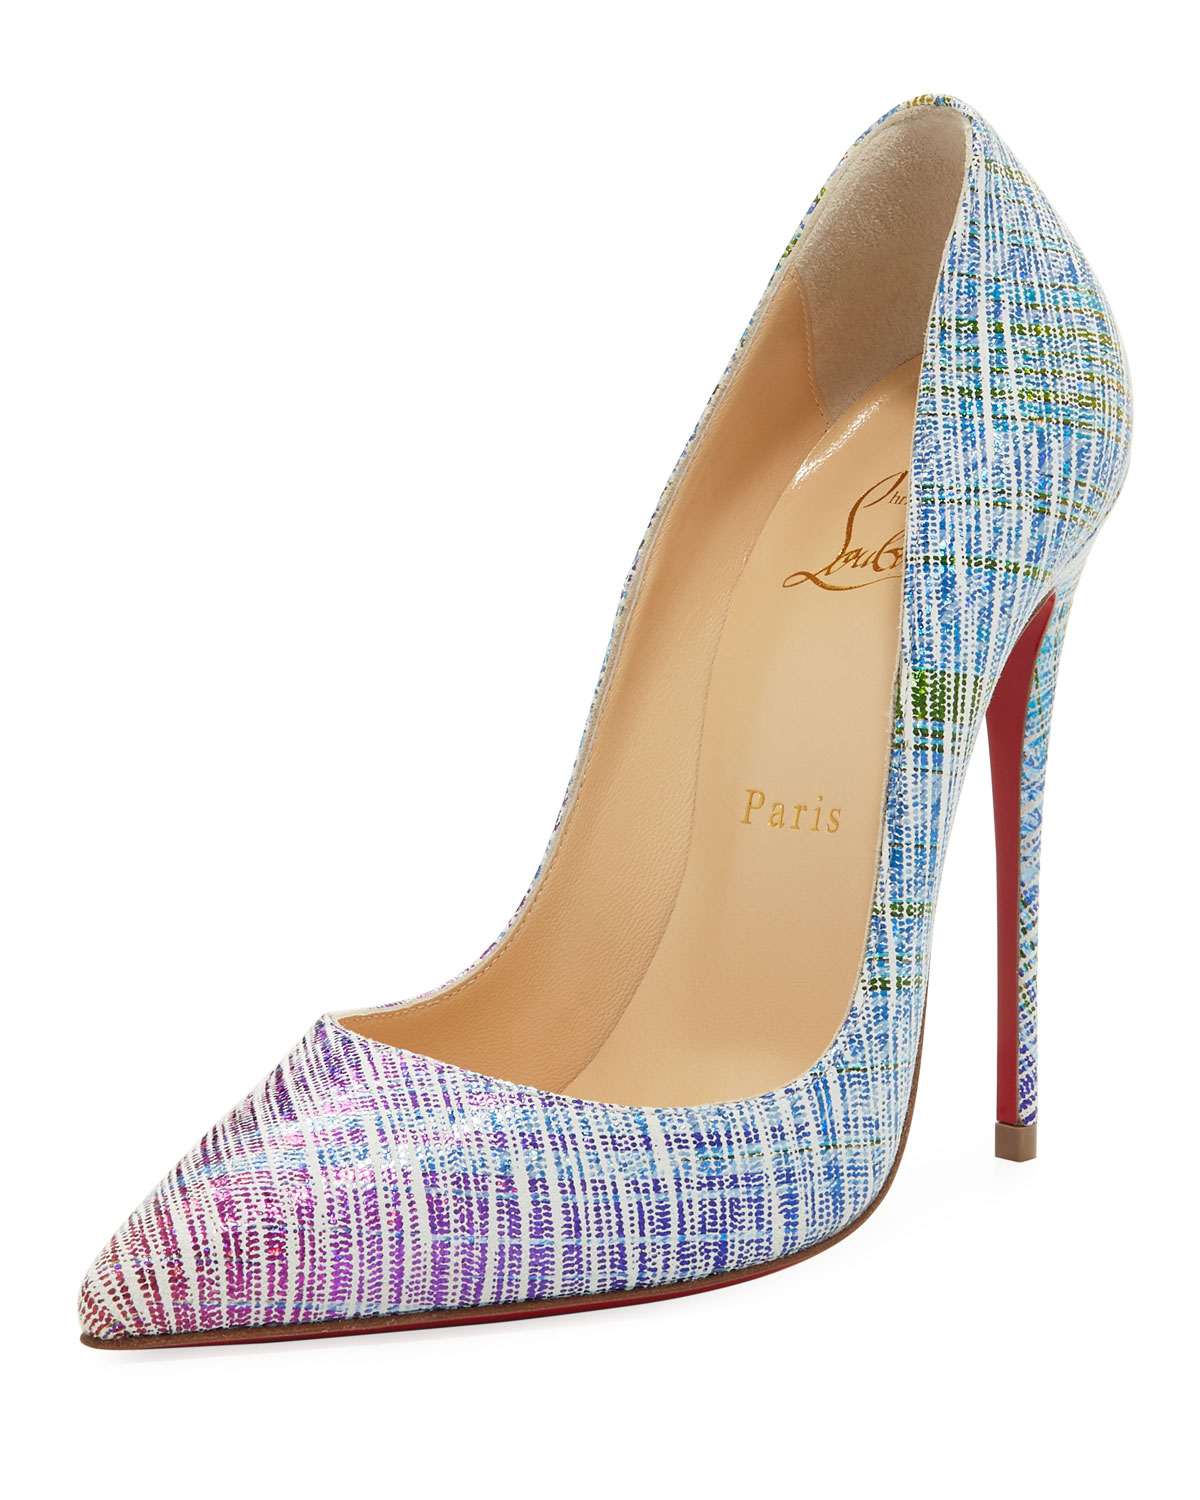 d72d6bf5da64 Christian Louboutin So Kate Ombré Red Sole Pump